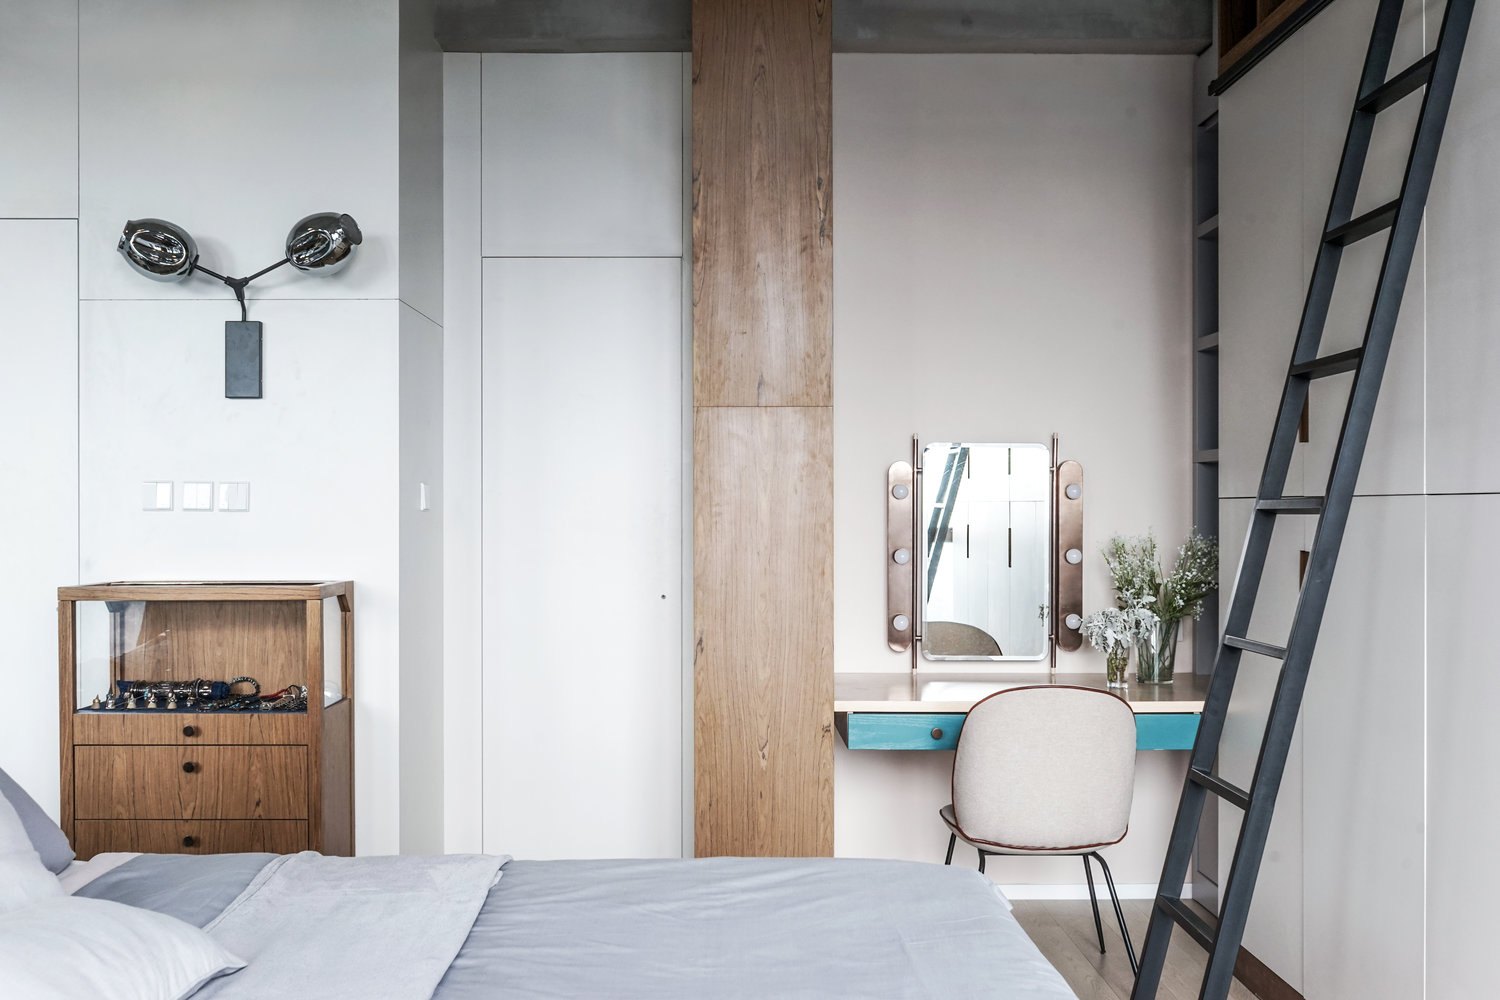 Wall Ladder Wooden Panel Scandinavian Bedroom - 3 small studio apartments that exude luxurious space